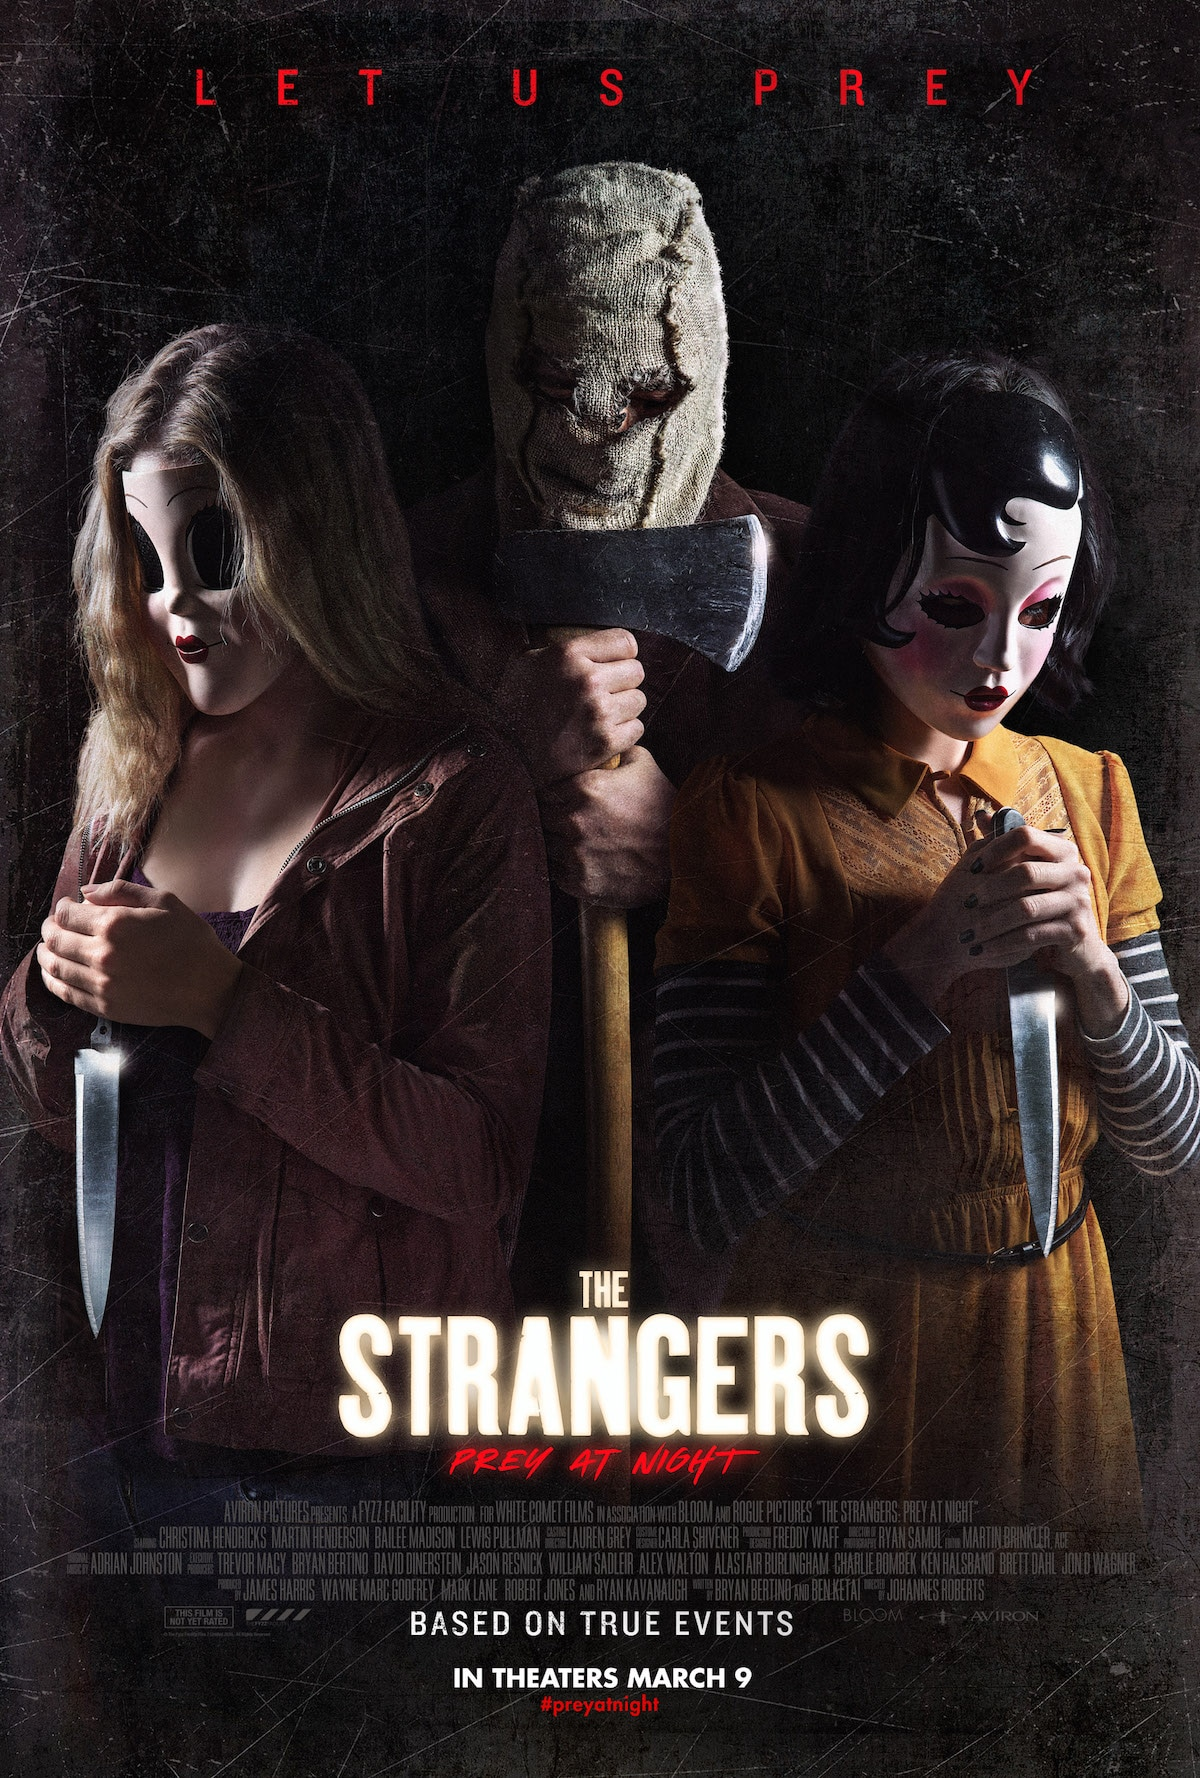 kip weeks, original man in the mask, slashes the strangers: prey at